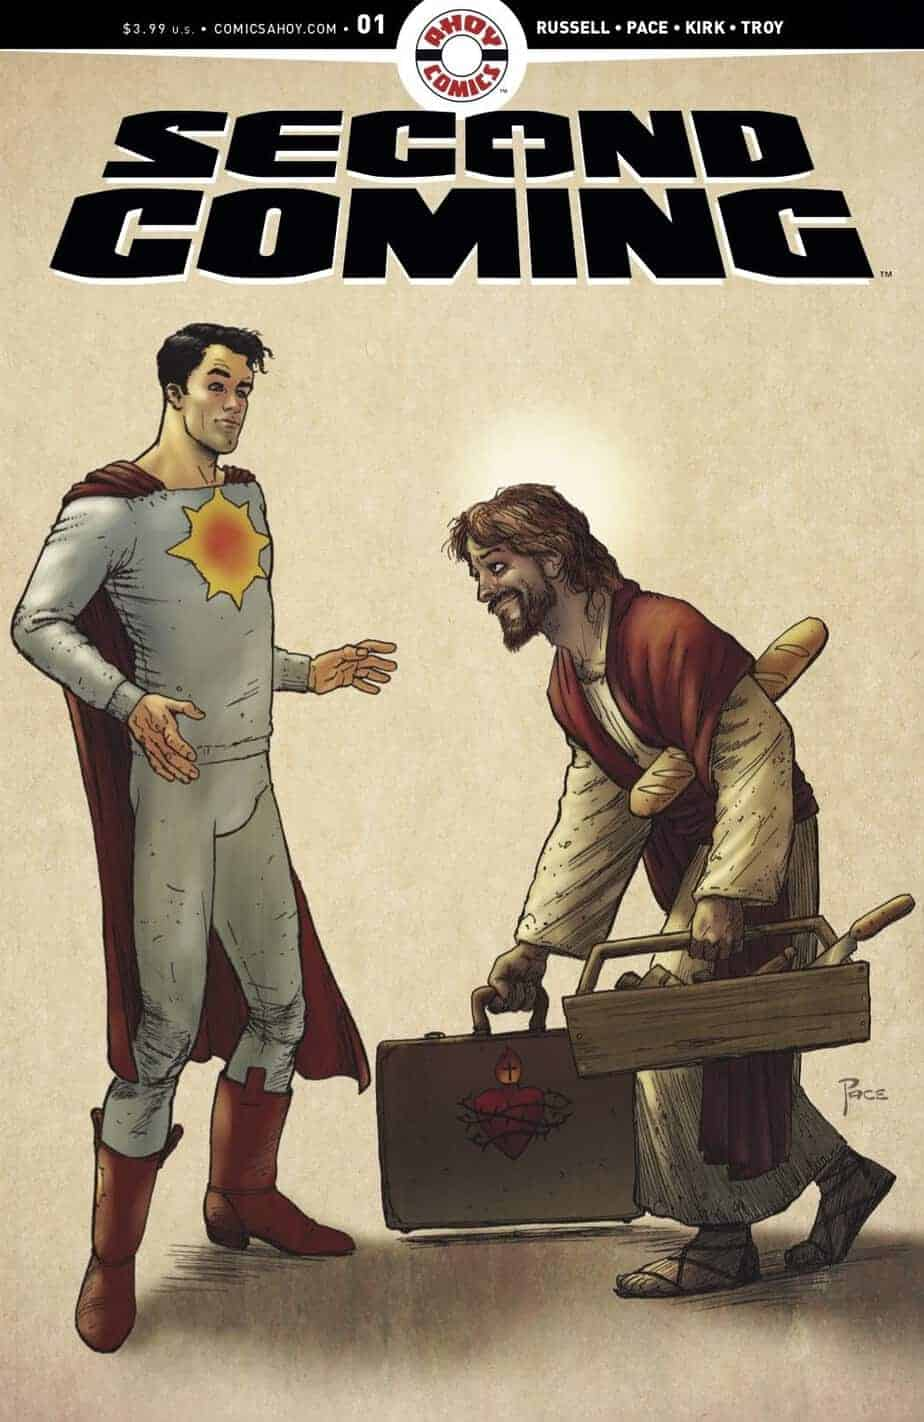 THE SECOND COMING #1 - Cover B